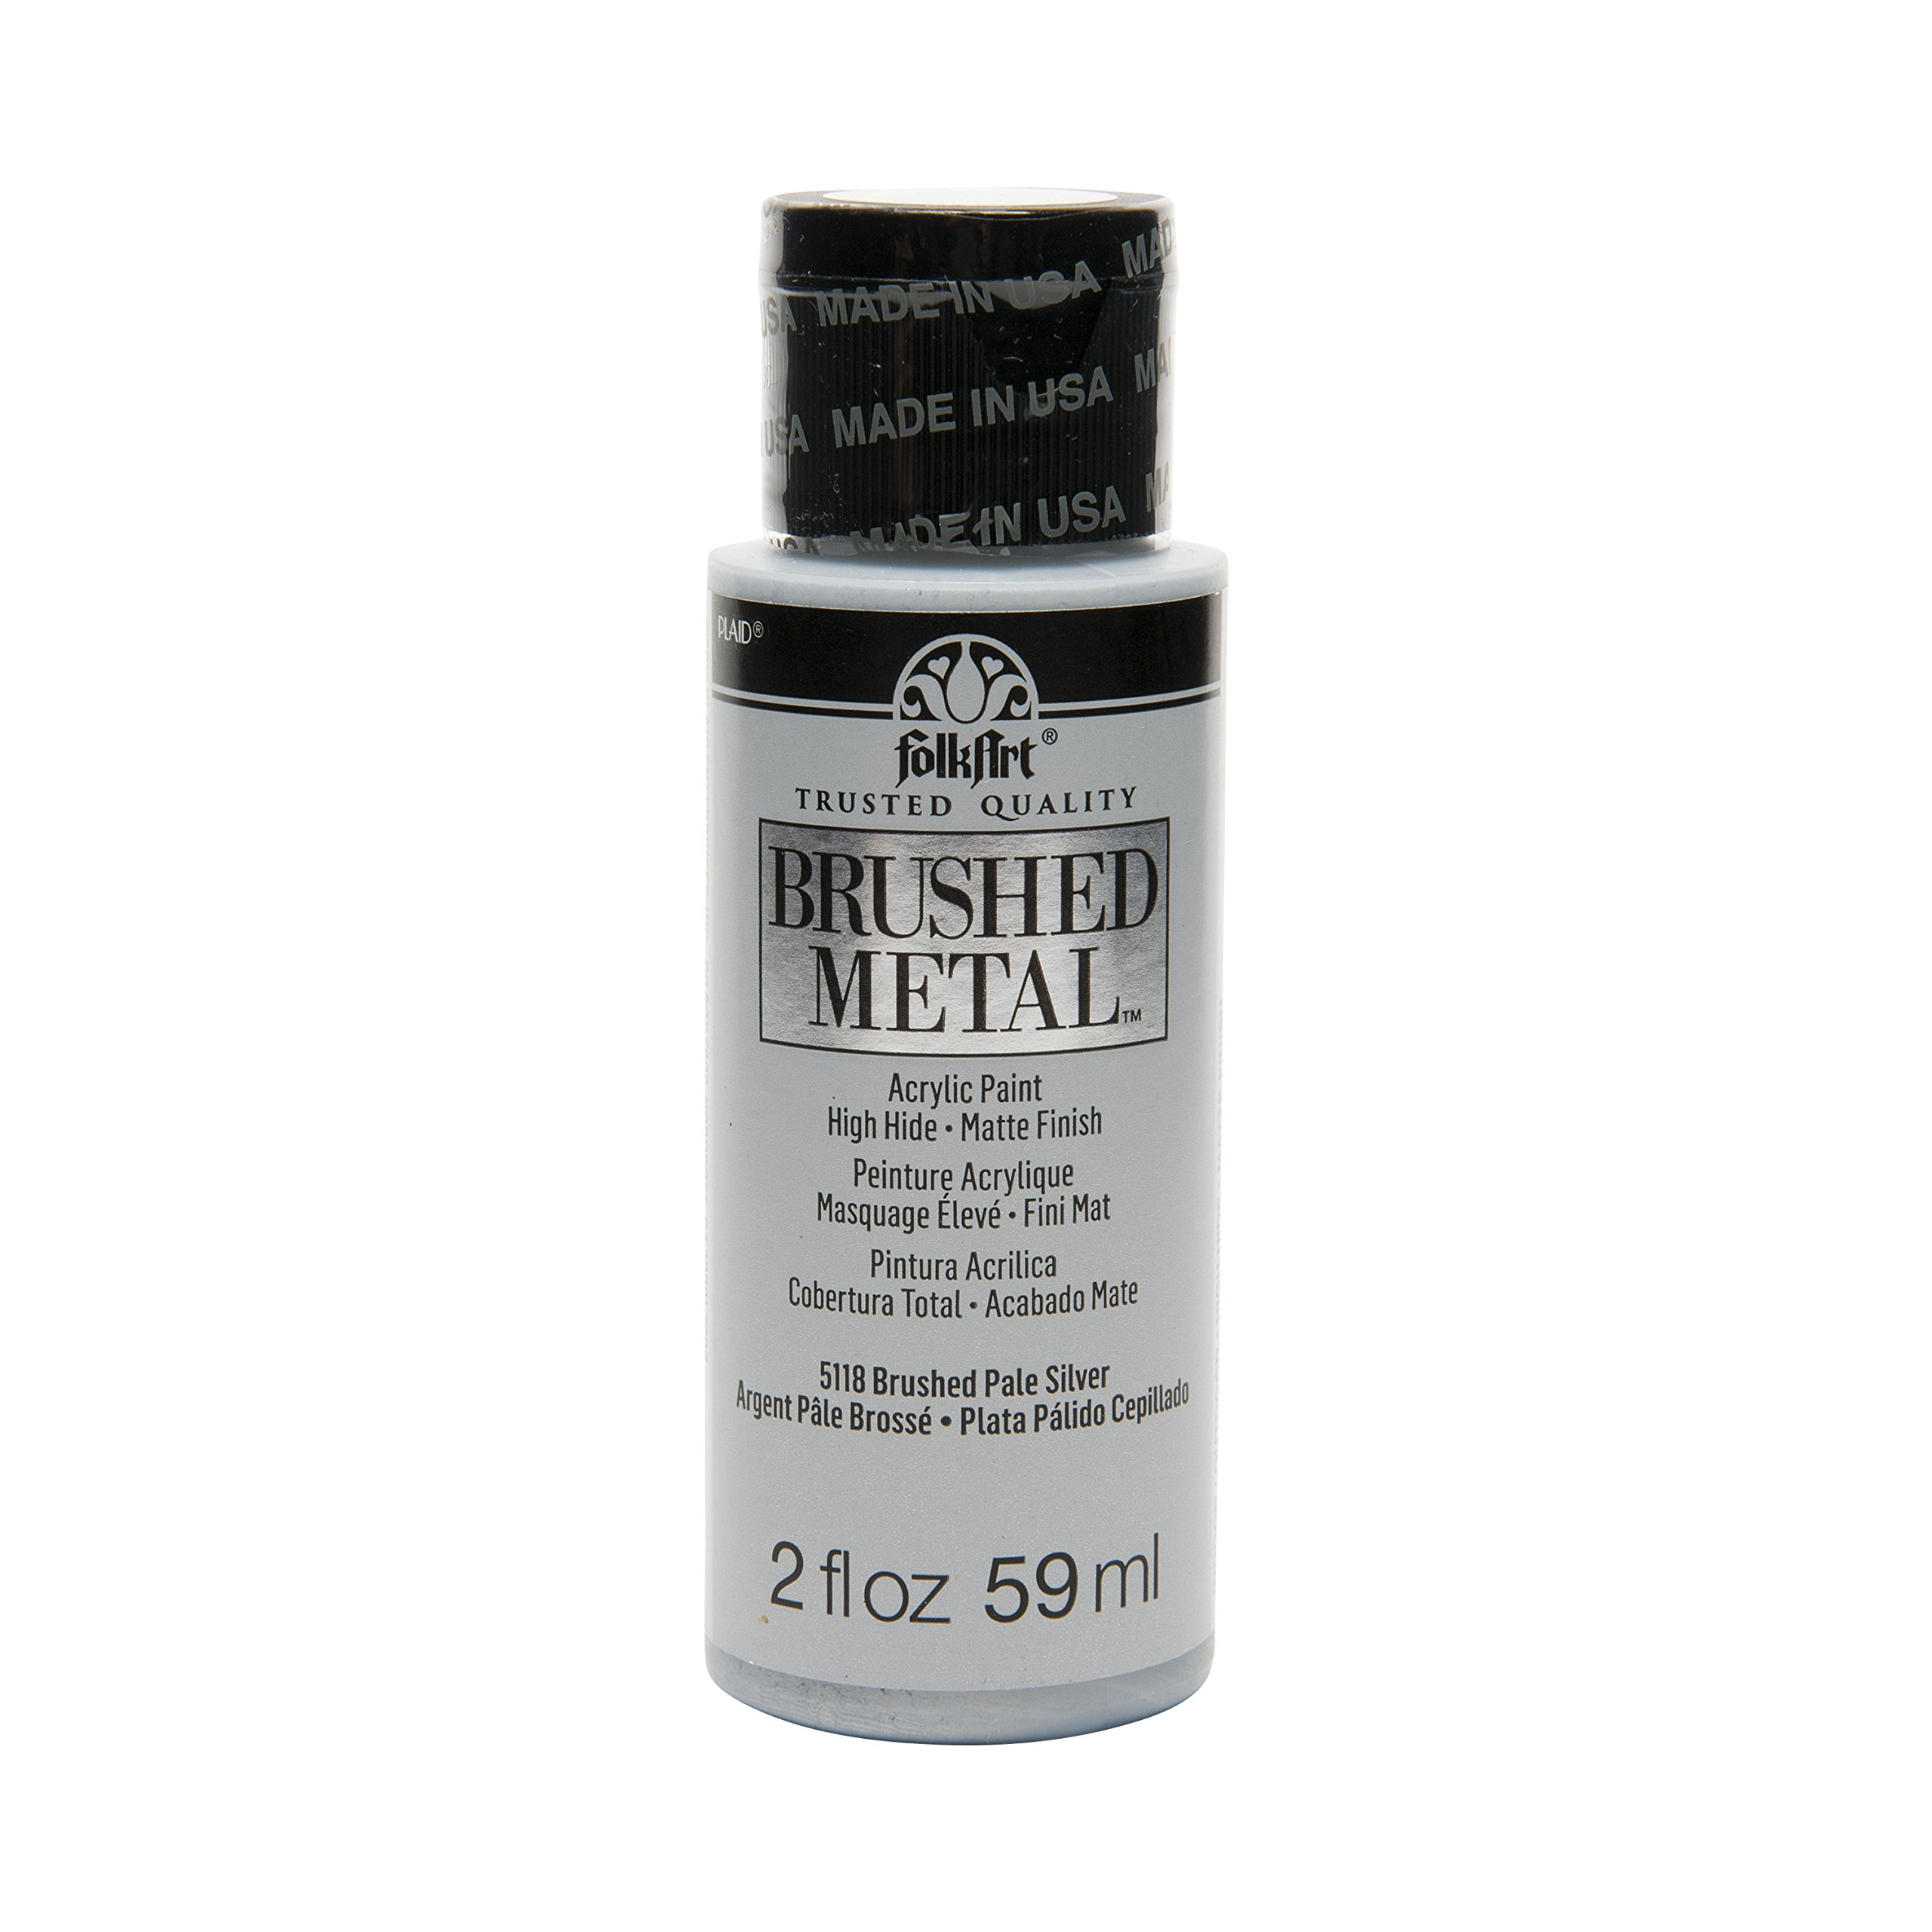 FolkArt Brushed Metal Paint in Assorted Colors (2 oz), Pale Silver